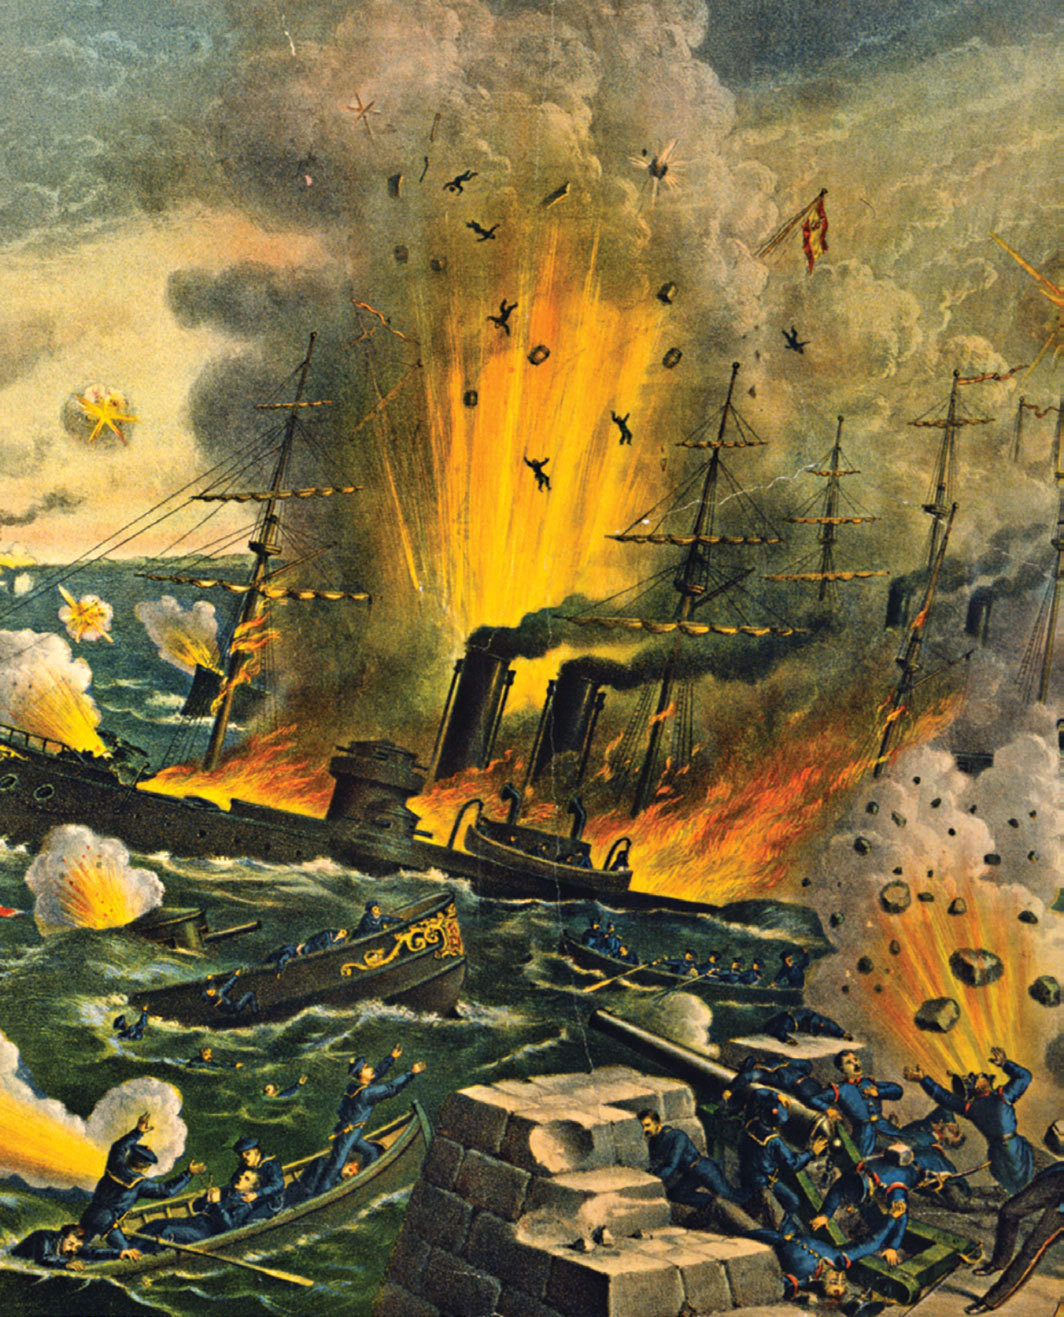 Lithograph detail depicting the Battle of Manila Bay, 1898.